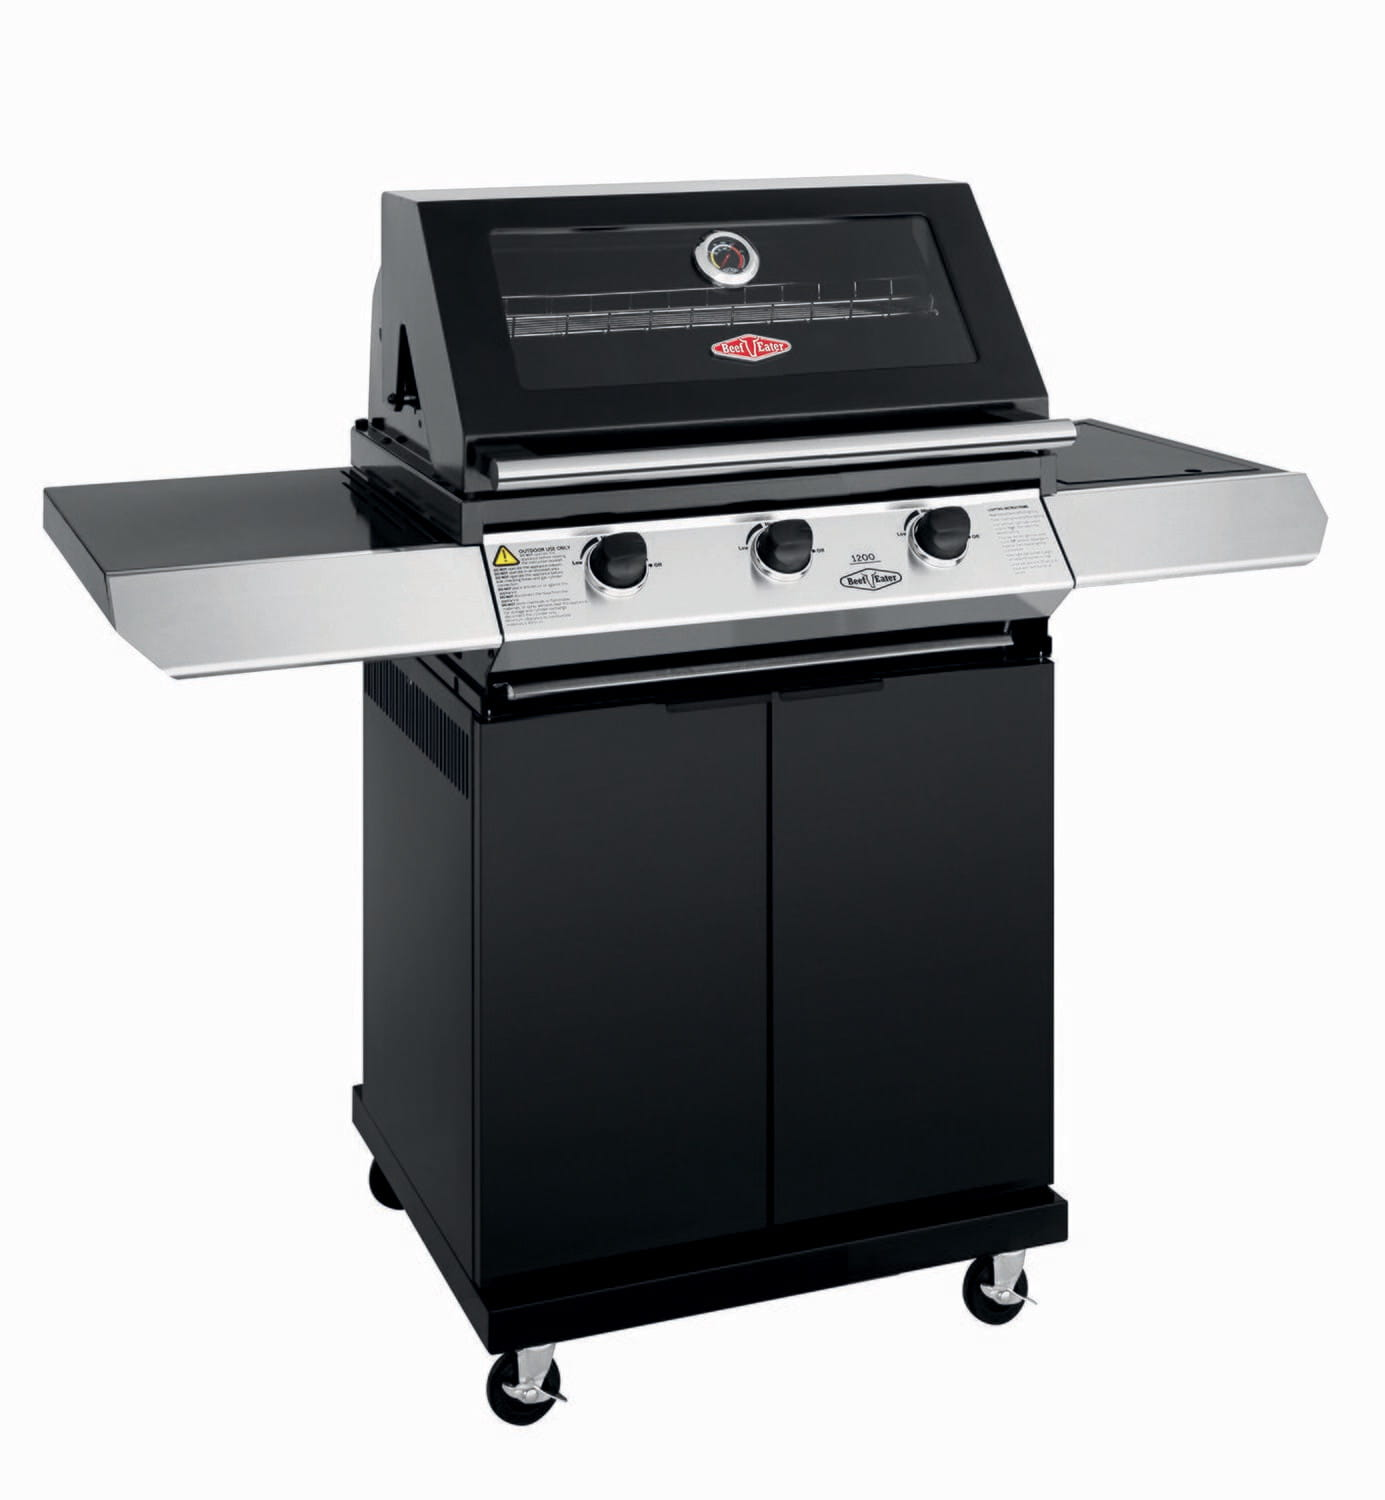 1200E Series – Barbecue 3 Bruleurs avec chariot